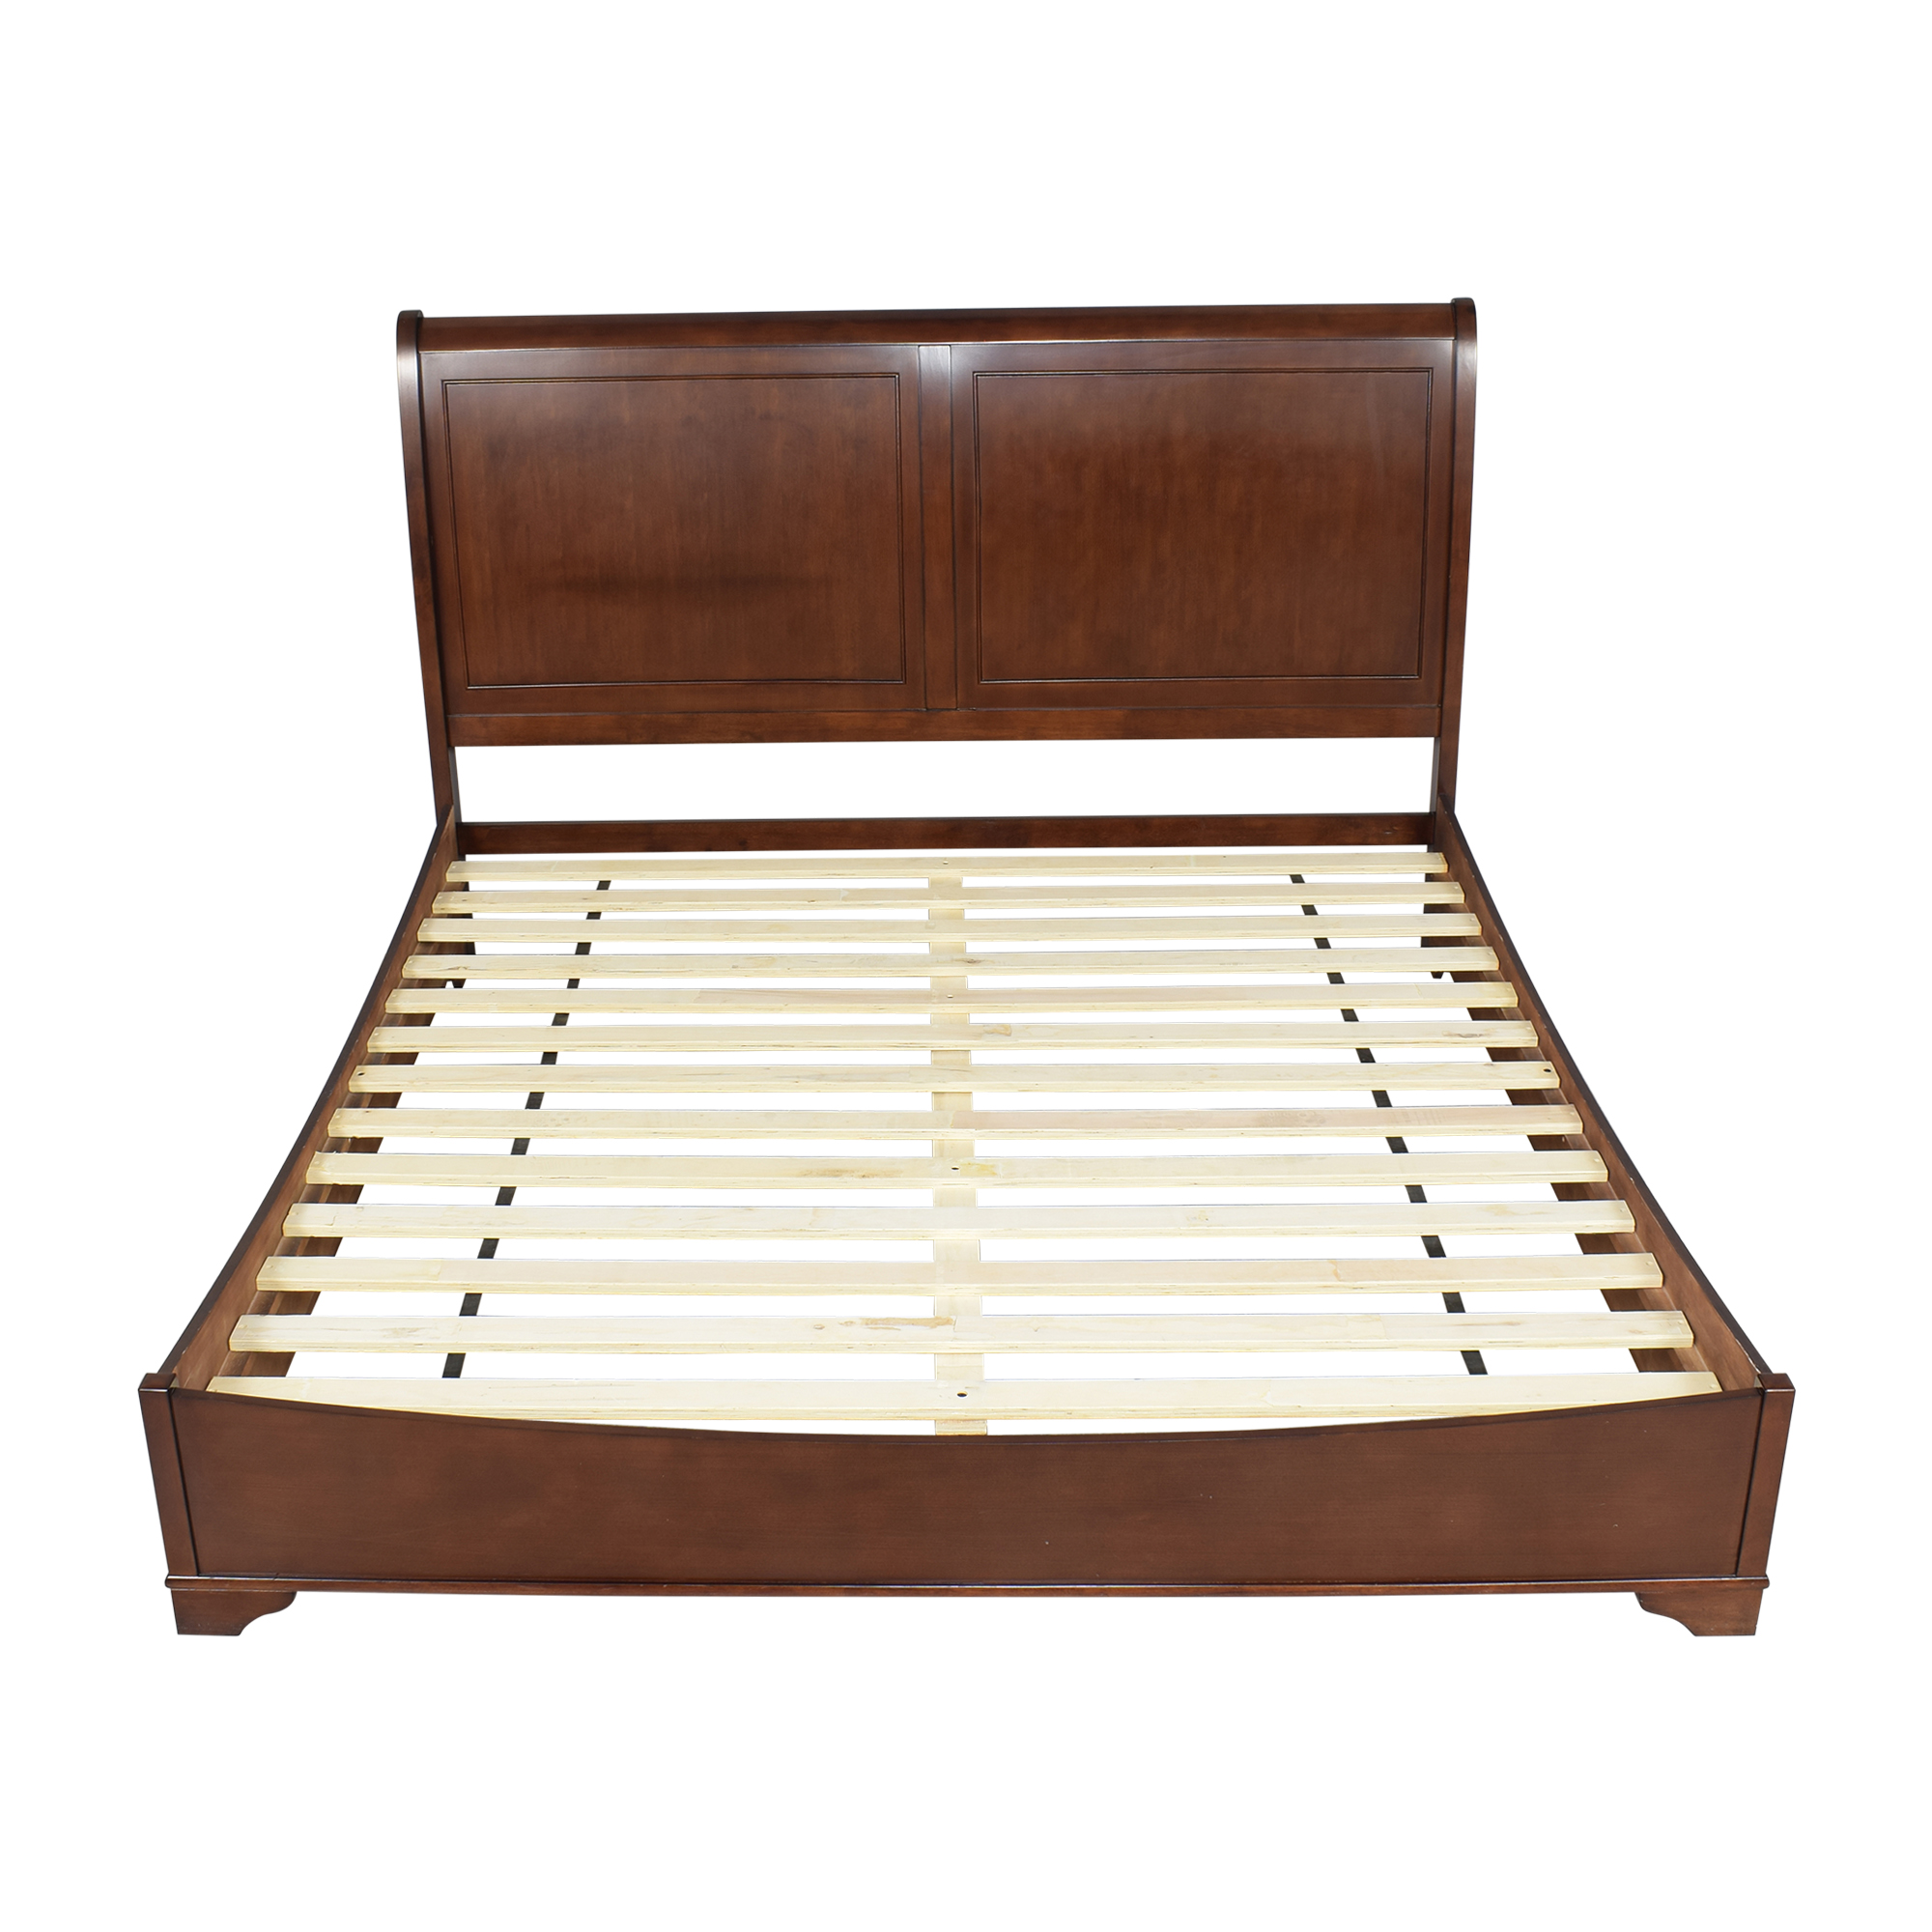 Lifestyle Solutions Lifestyle Solutions King Bed for sale